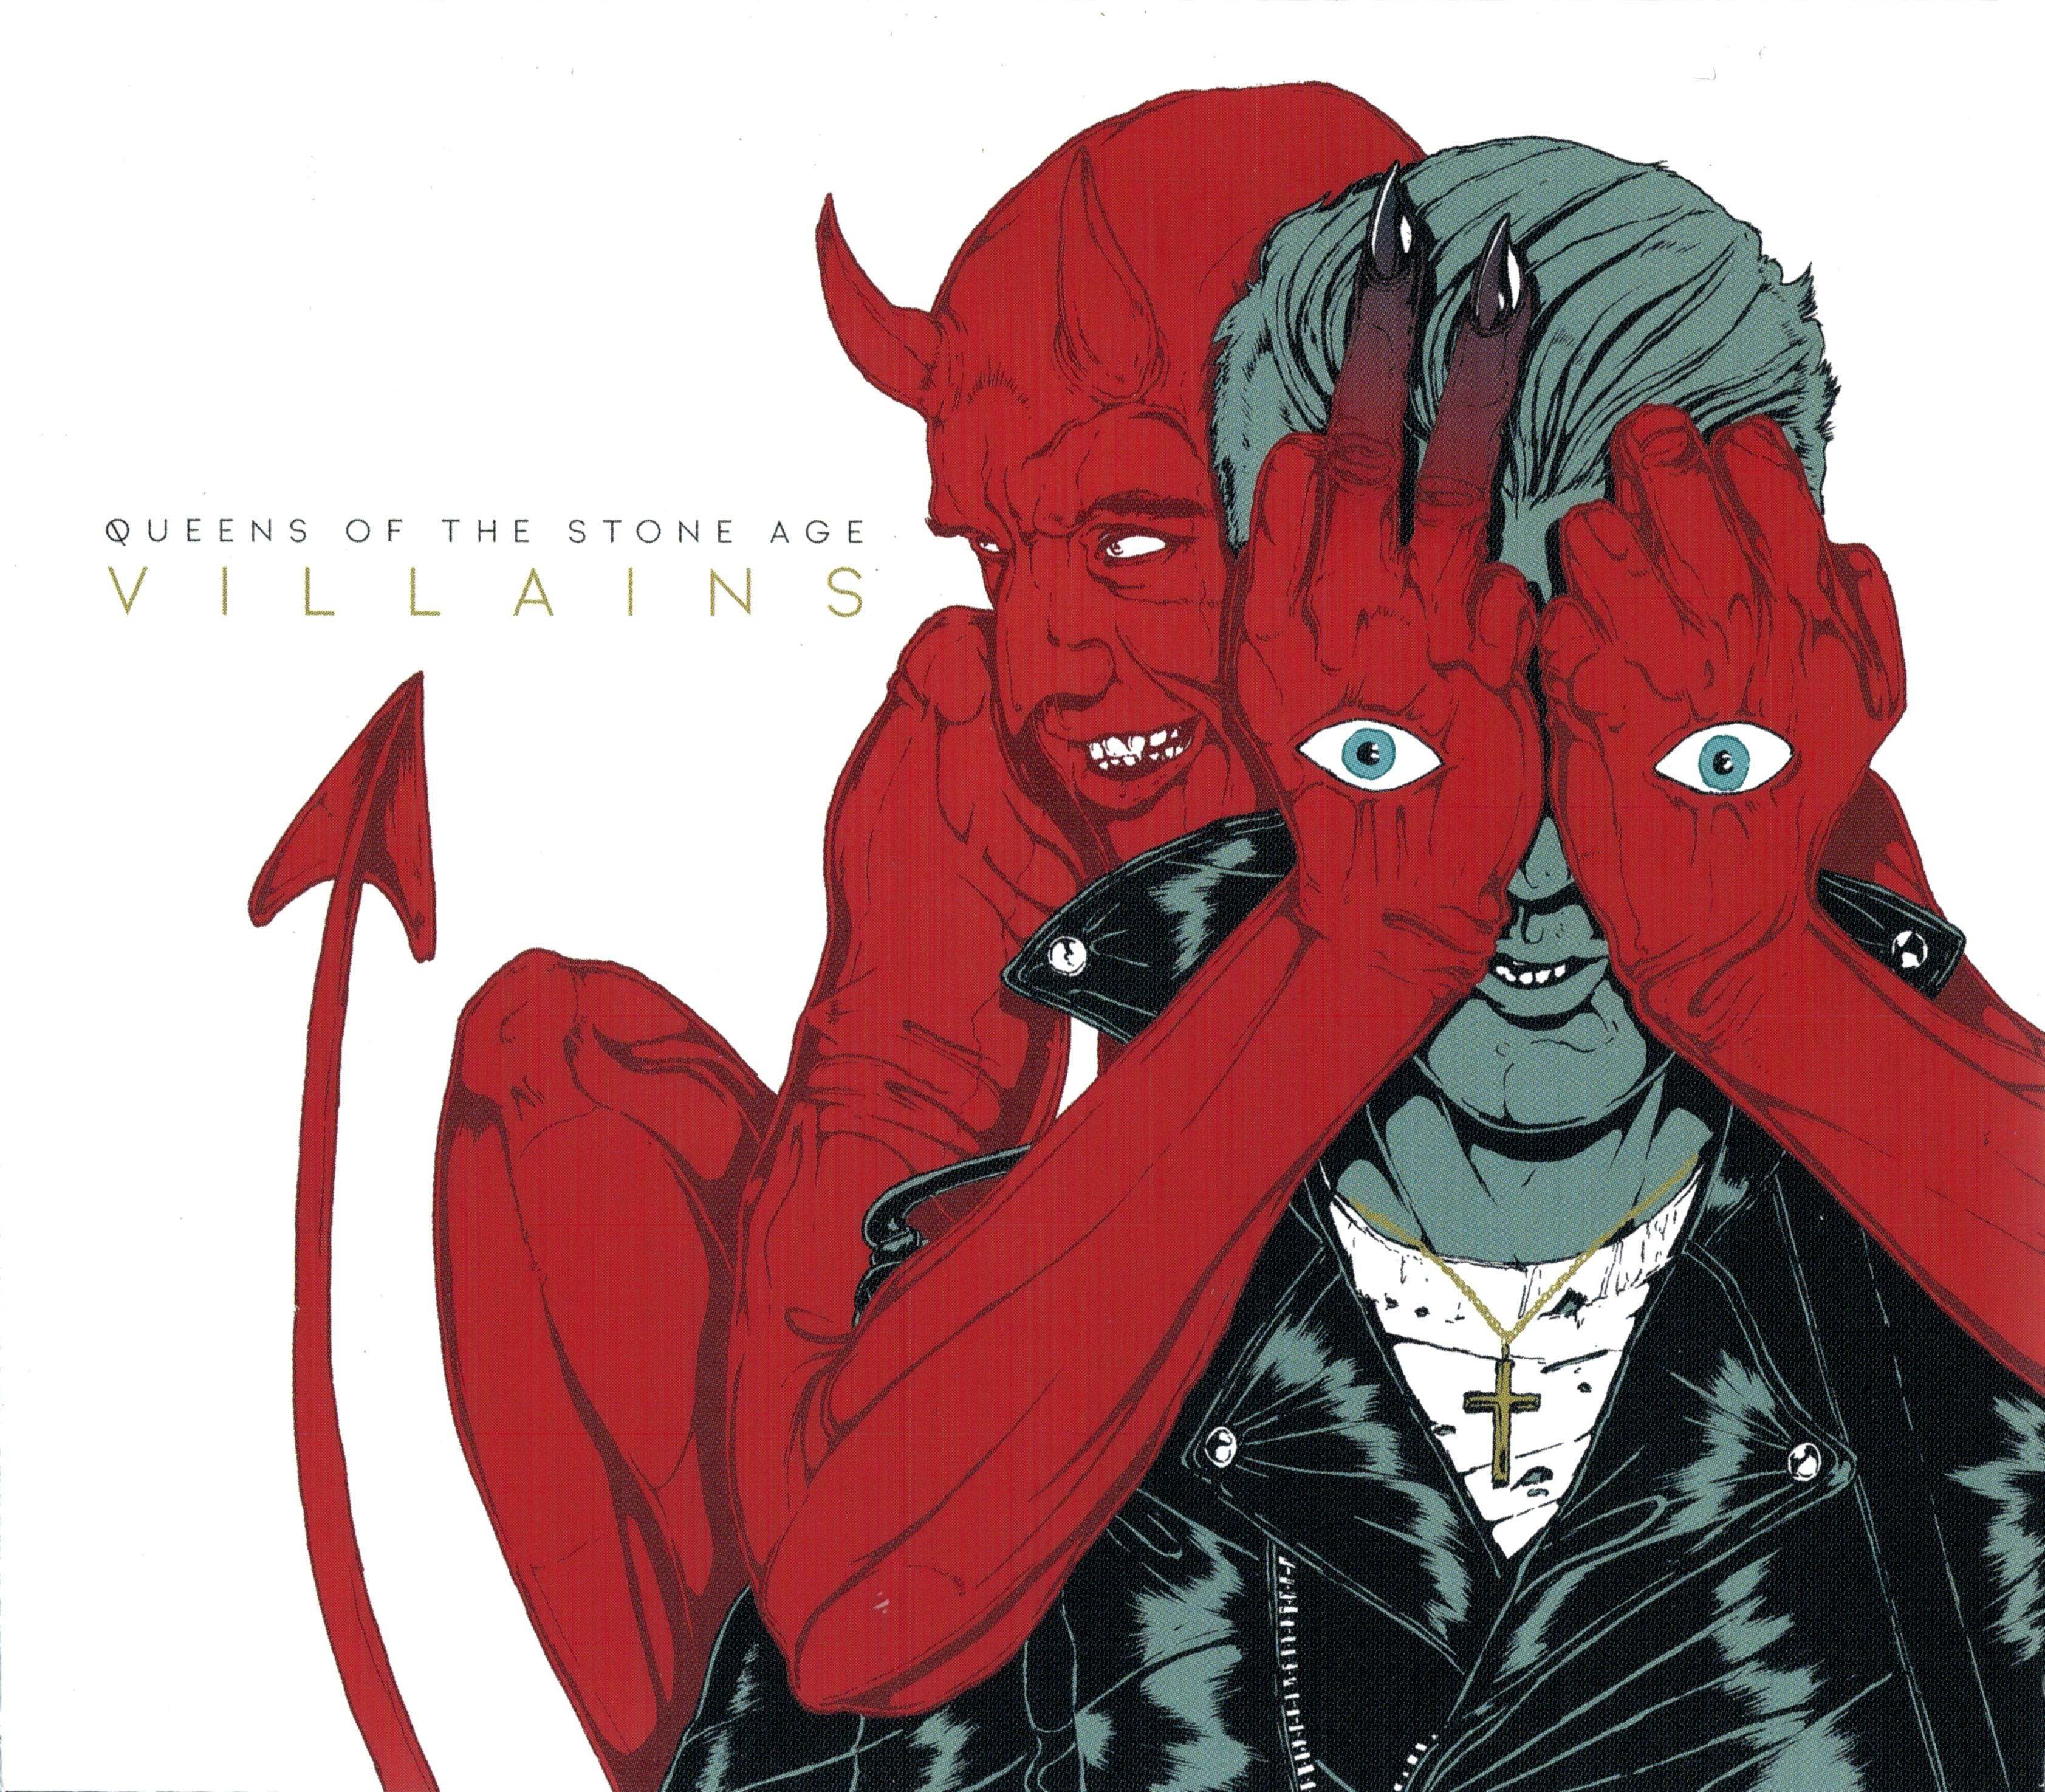 Queens Of The Stone Age - Villains album cover